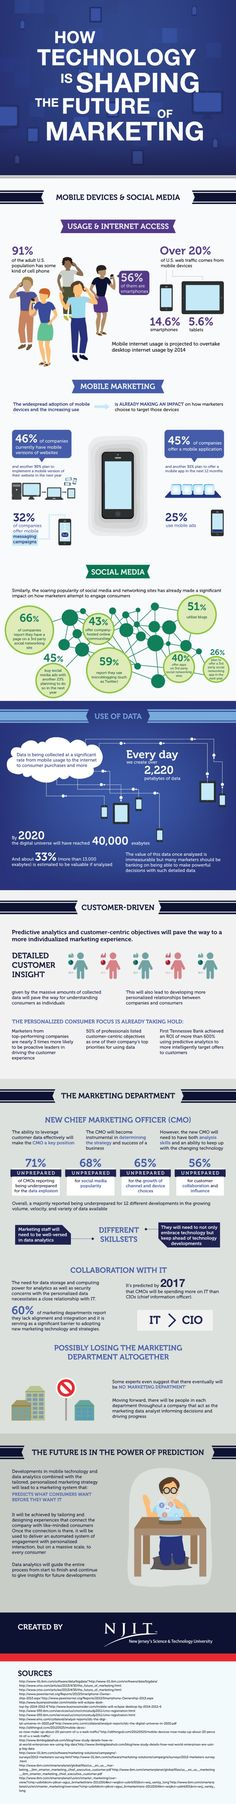 How technology is Shaping the Future of Marketing - infographic